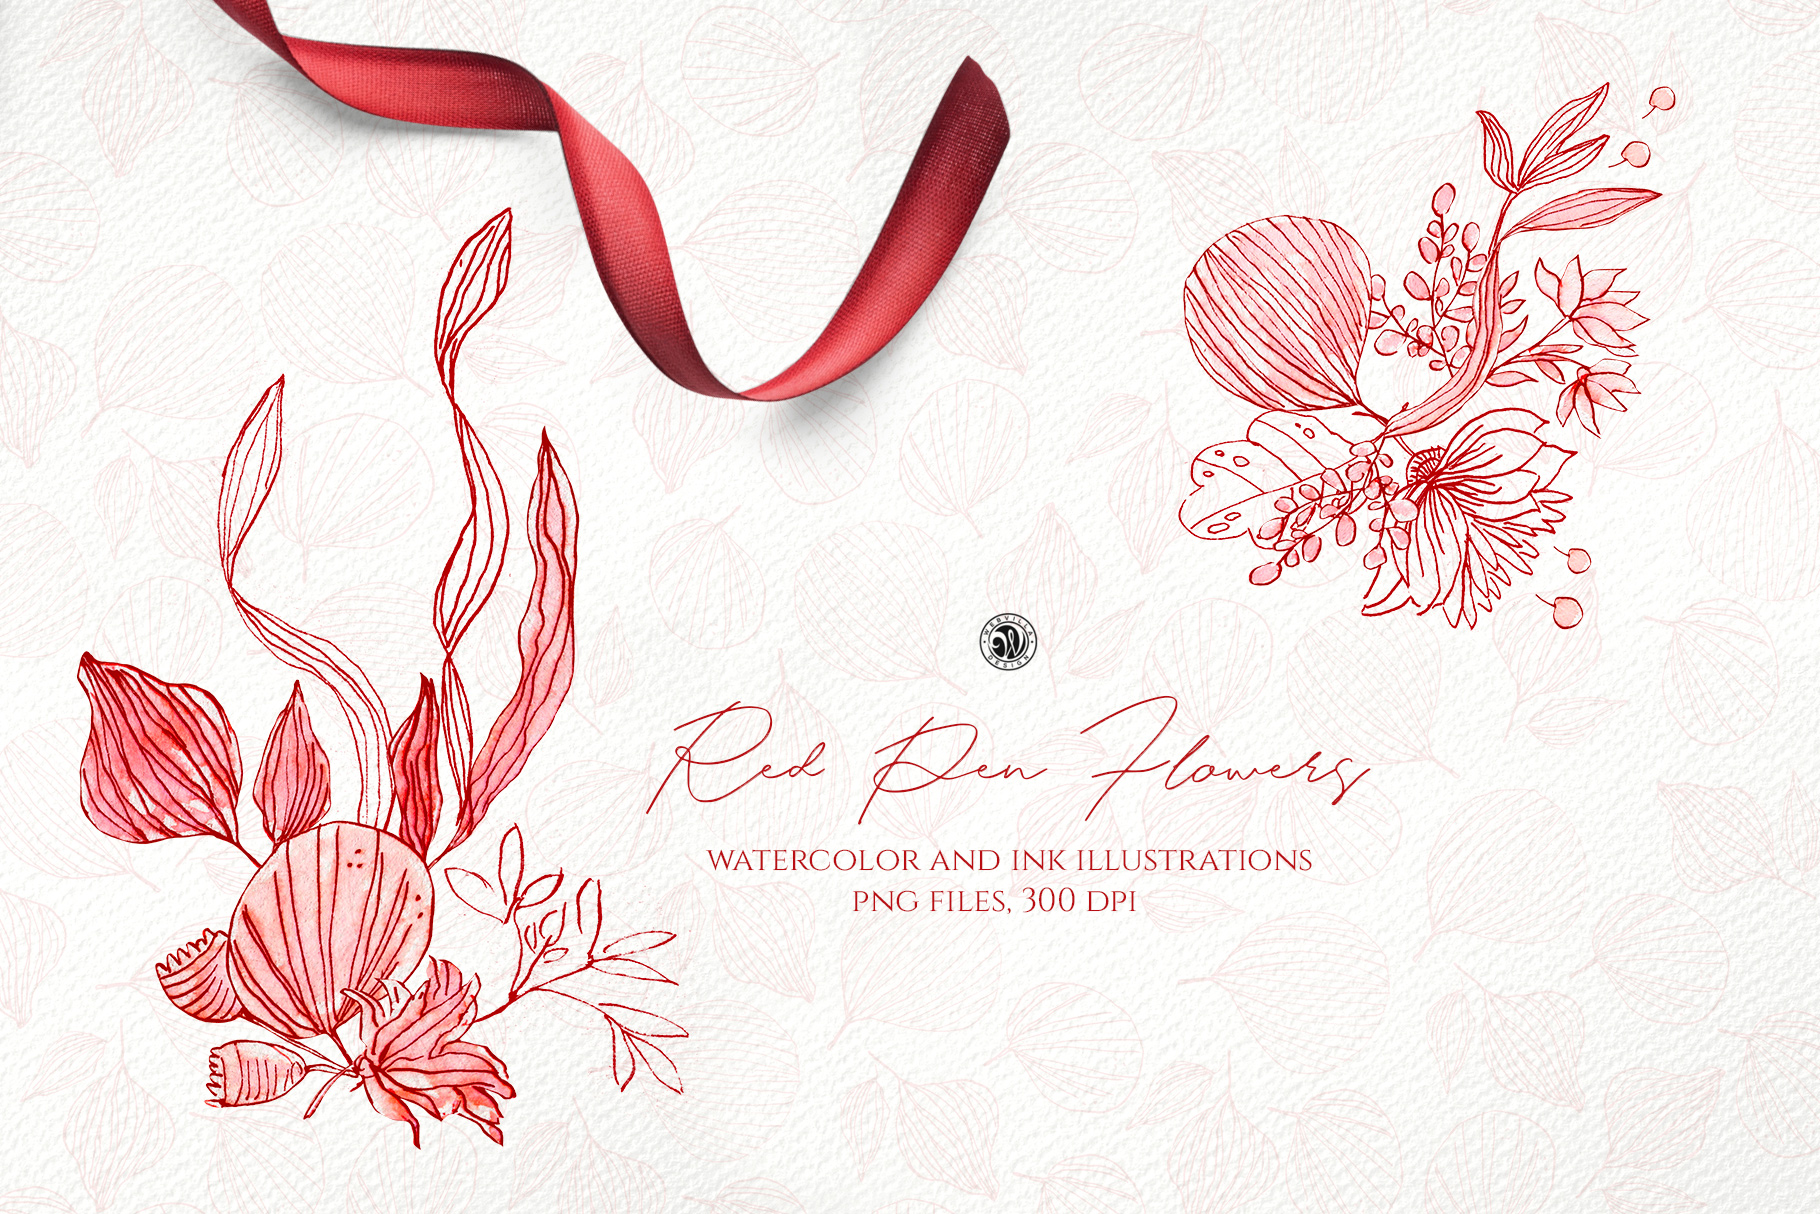 Red Pen Flowers - Price $14